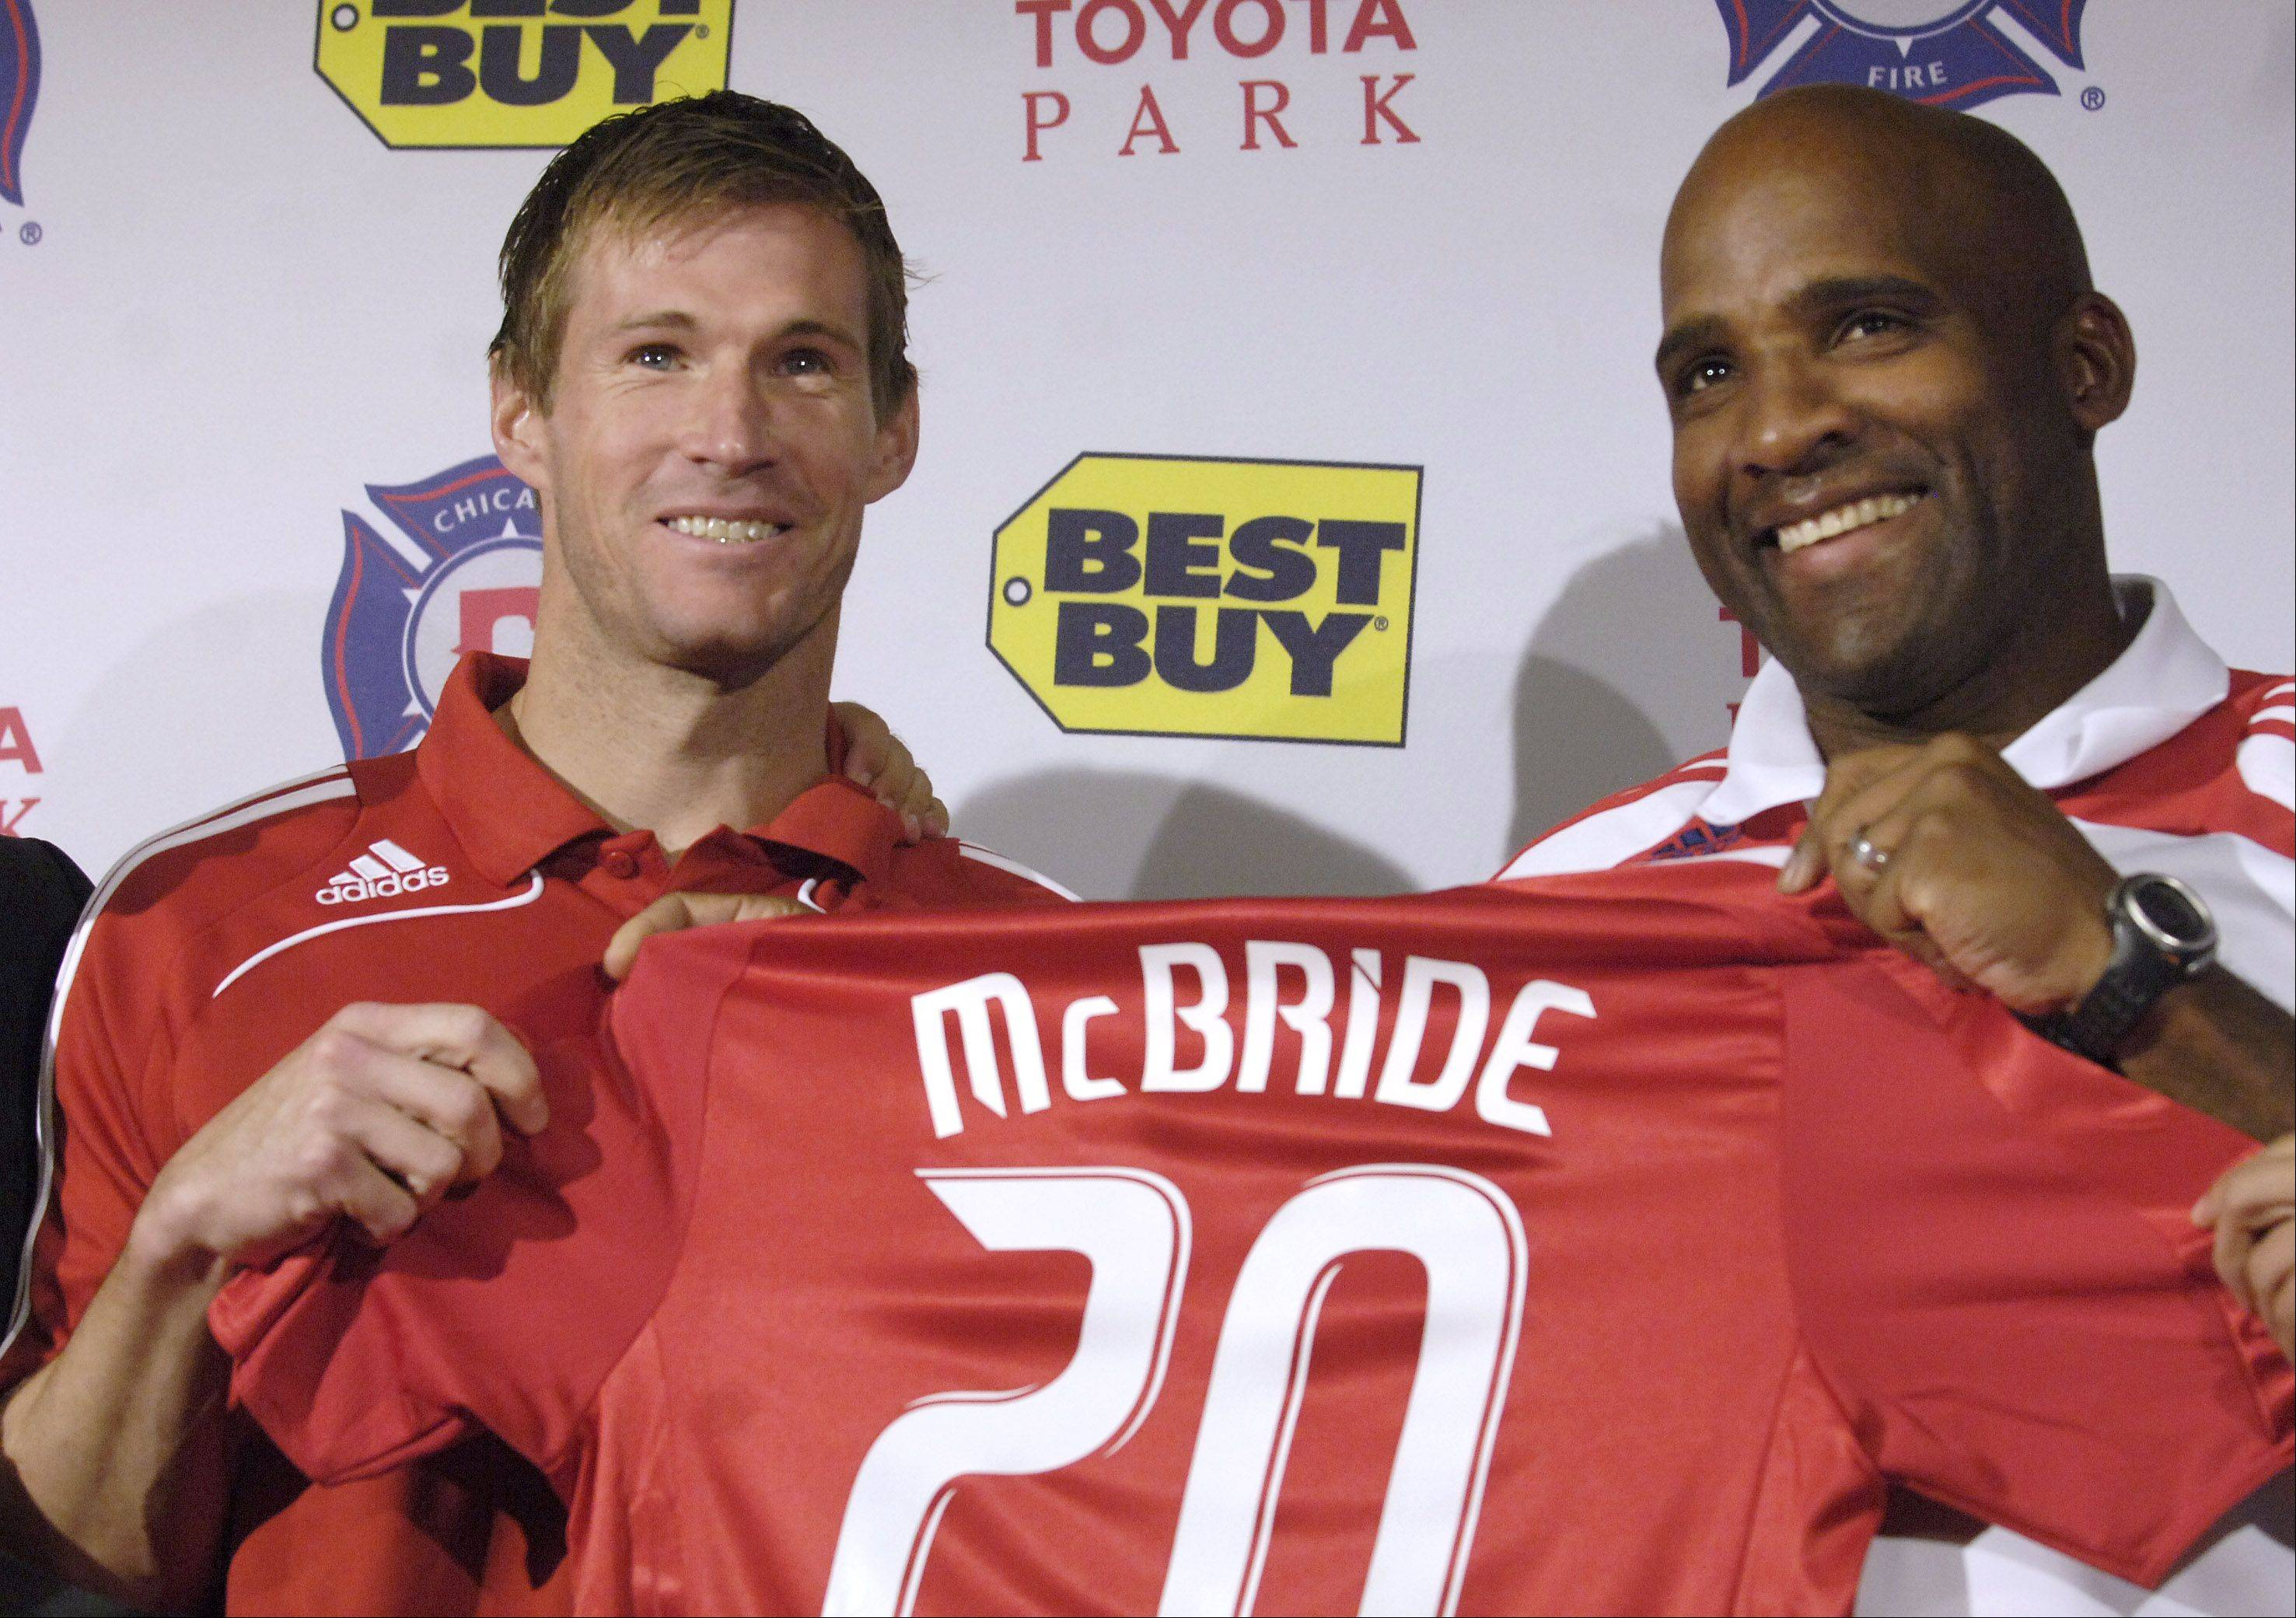 Brian McBride, left, receives a new jersey from head coach Denis Hamlett during a Chicago Fire press conference at Toyota Park in Bridgeview.